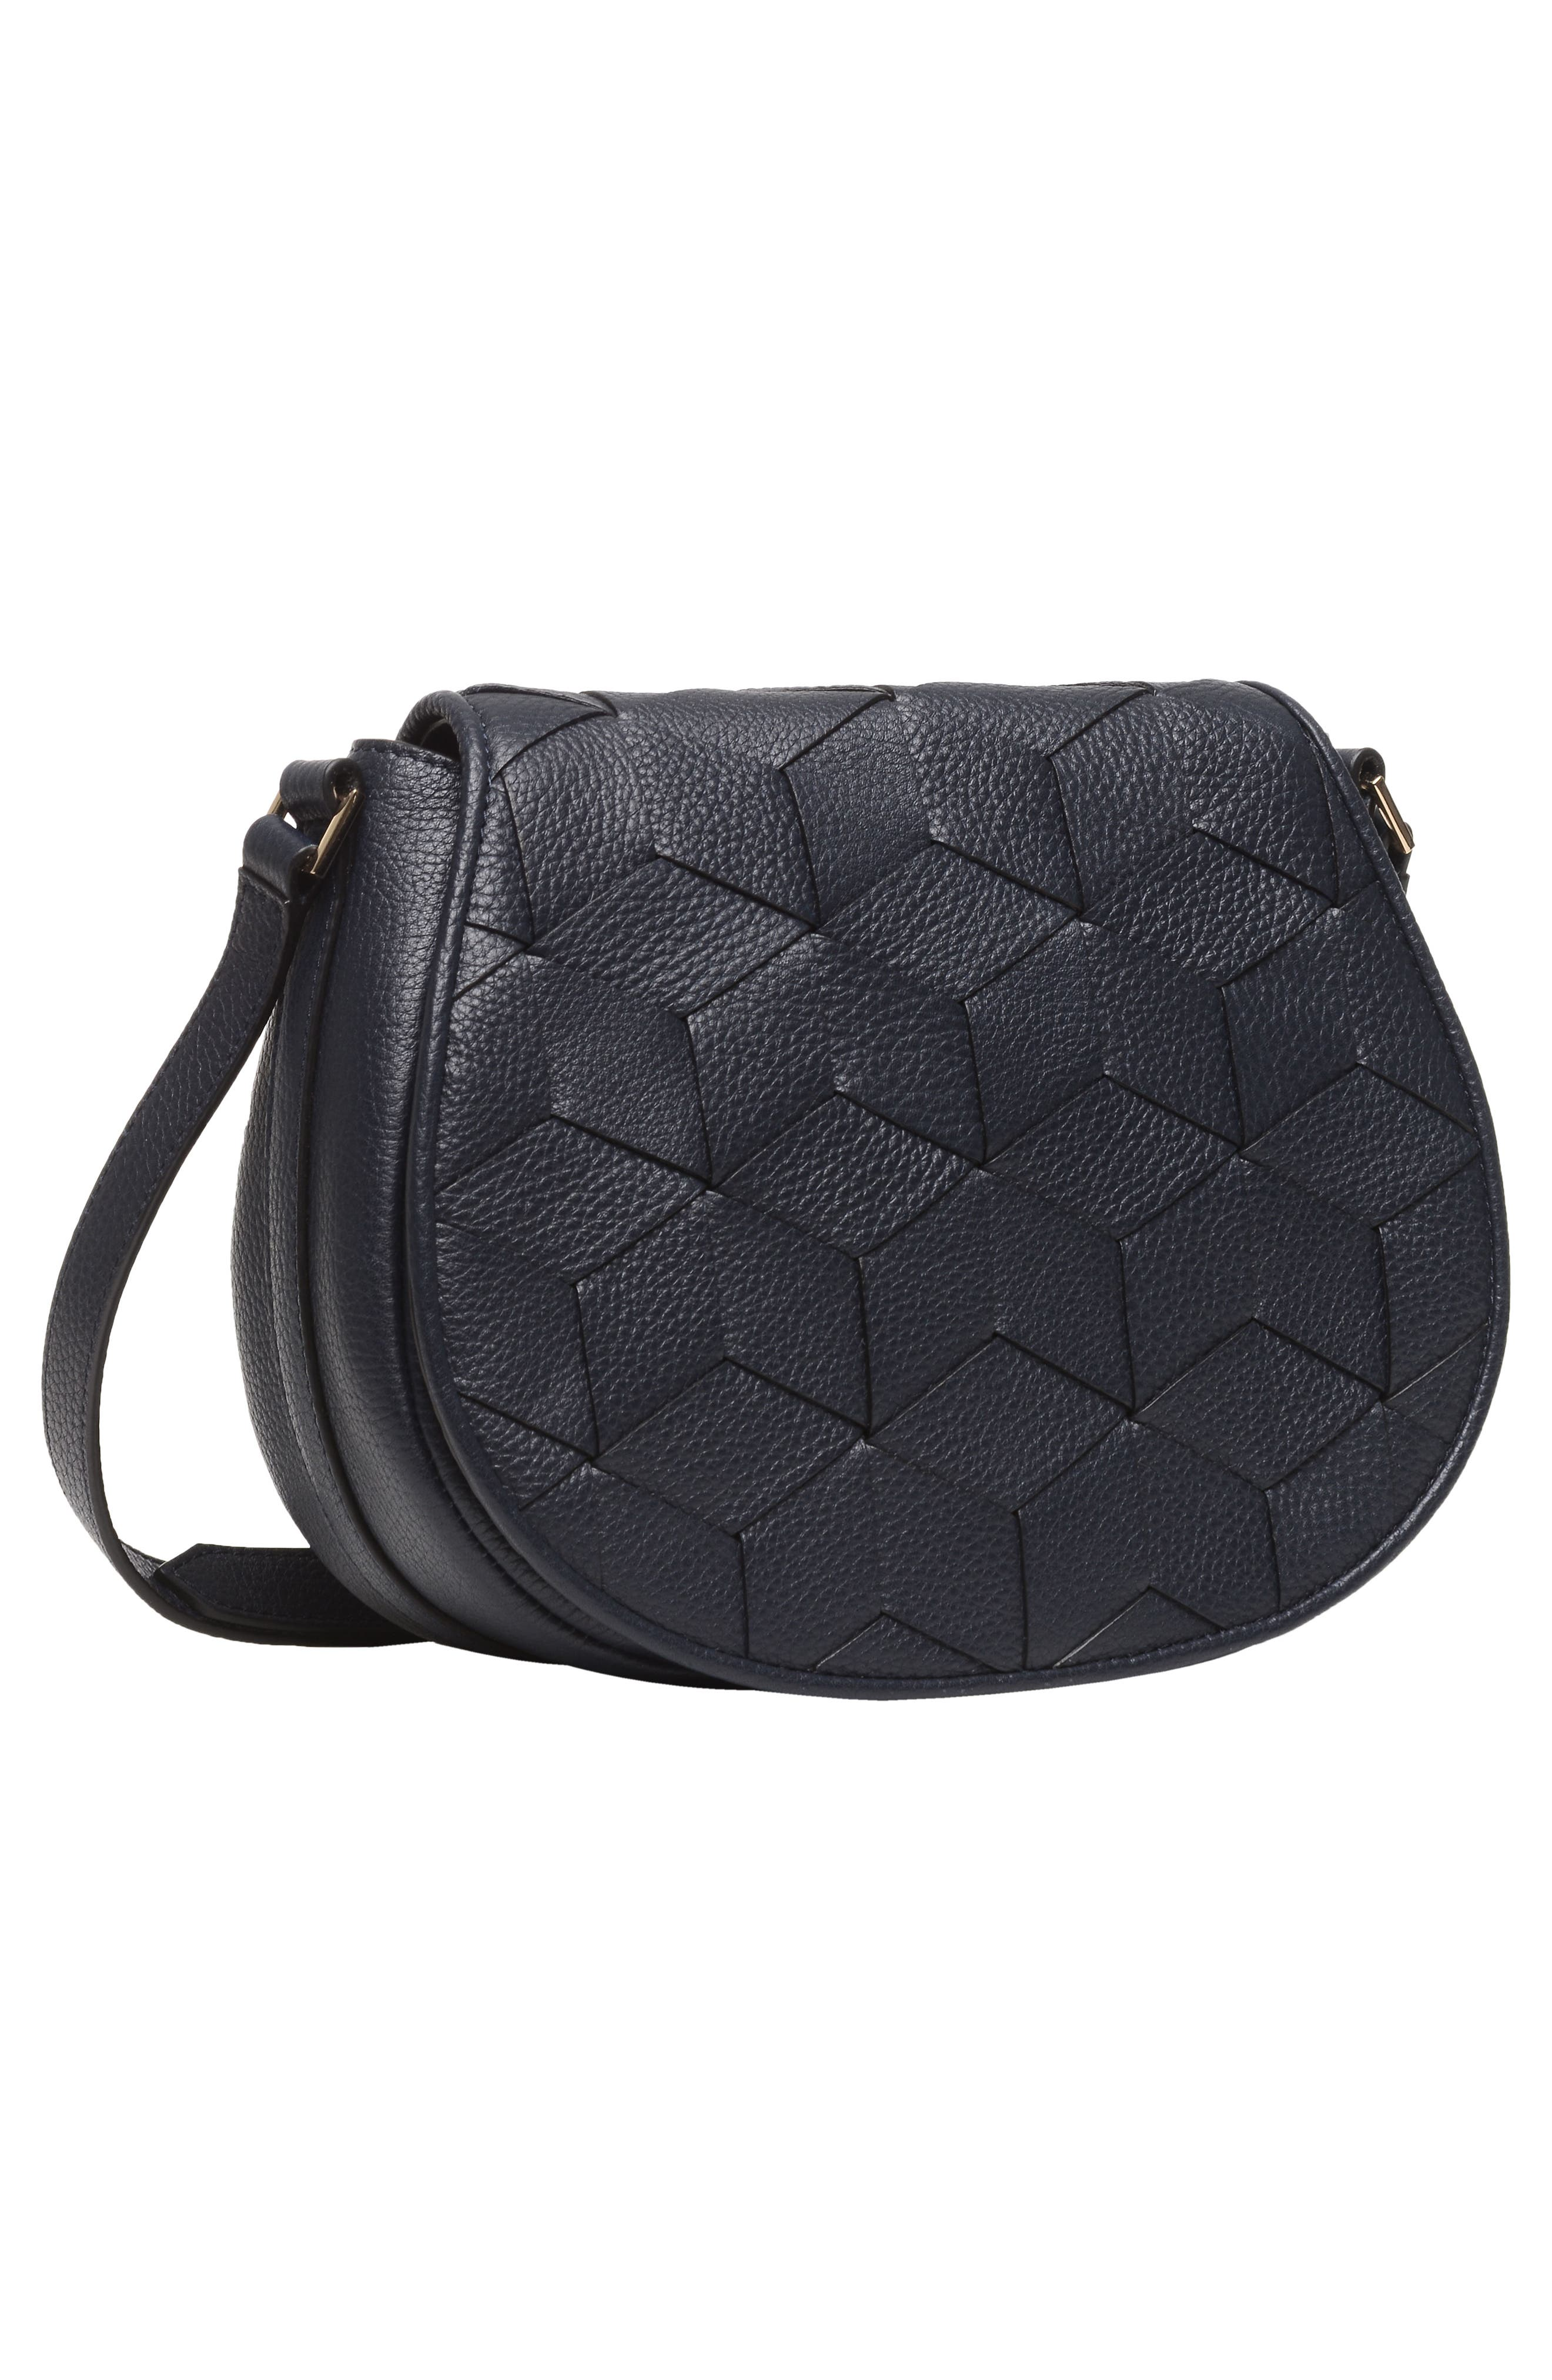 Escapade Pebbled Leather Saddle Bag,                             Alternate thumbnail 4, color,                             NAVY